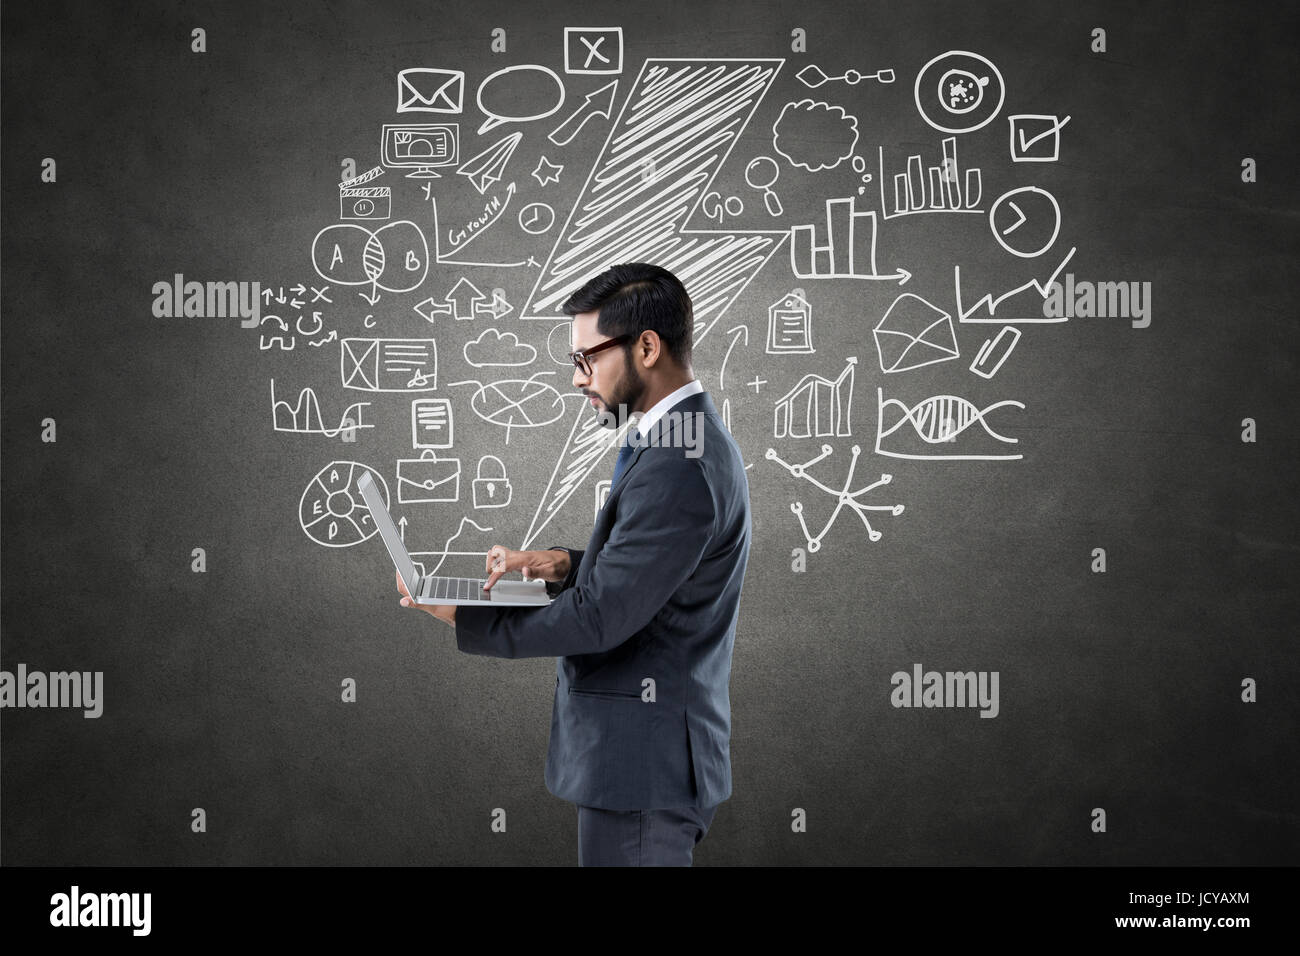 Businessman using laptop in front of blackboard with icons Stock Photo